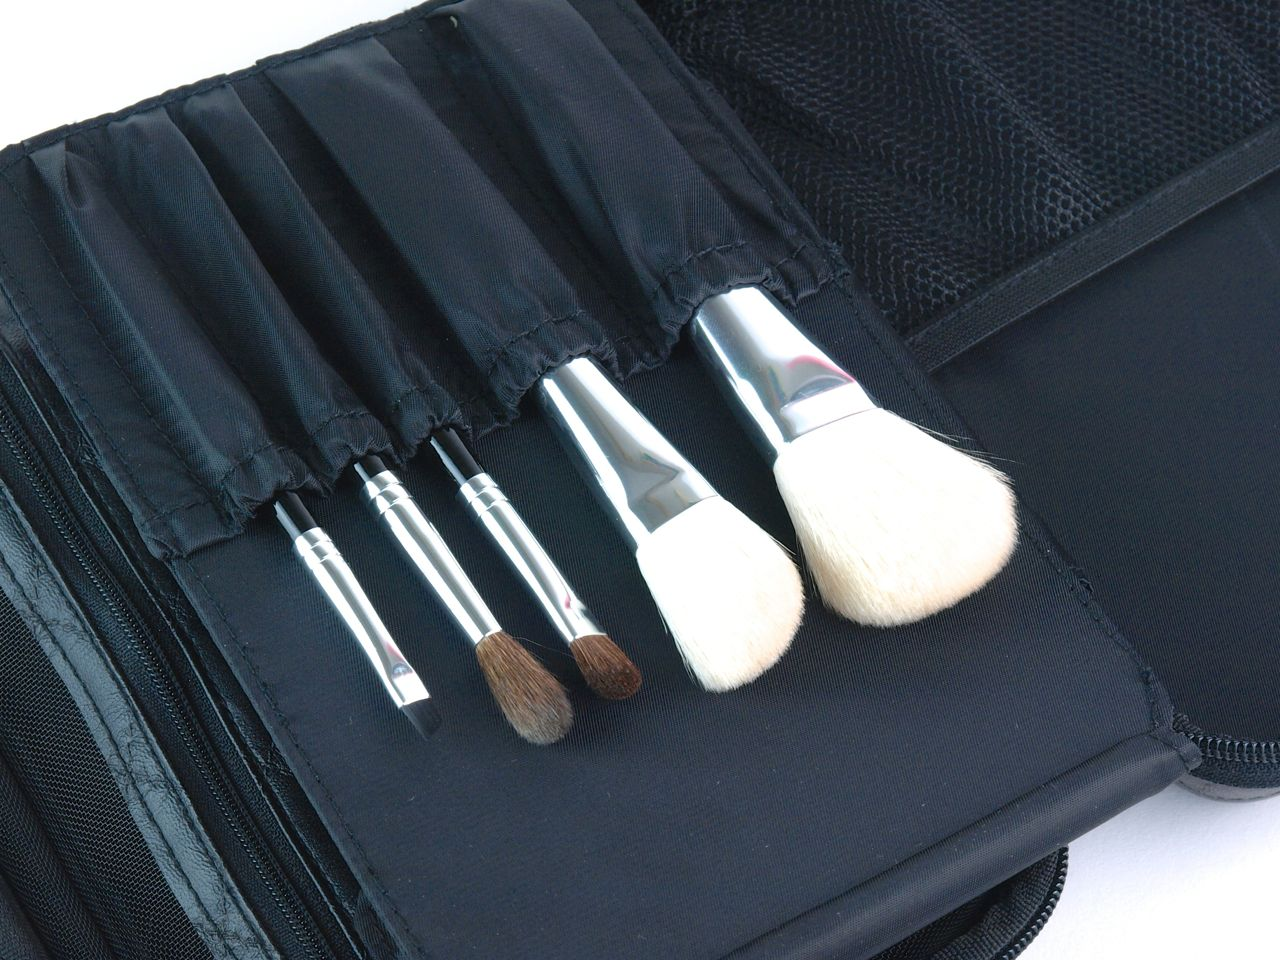 Sephora Collection Have It All Travel Case Brush Set: Review